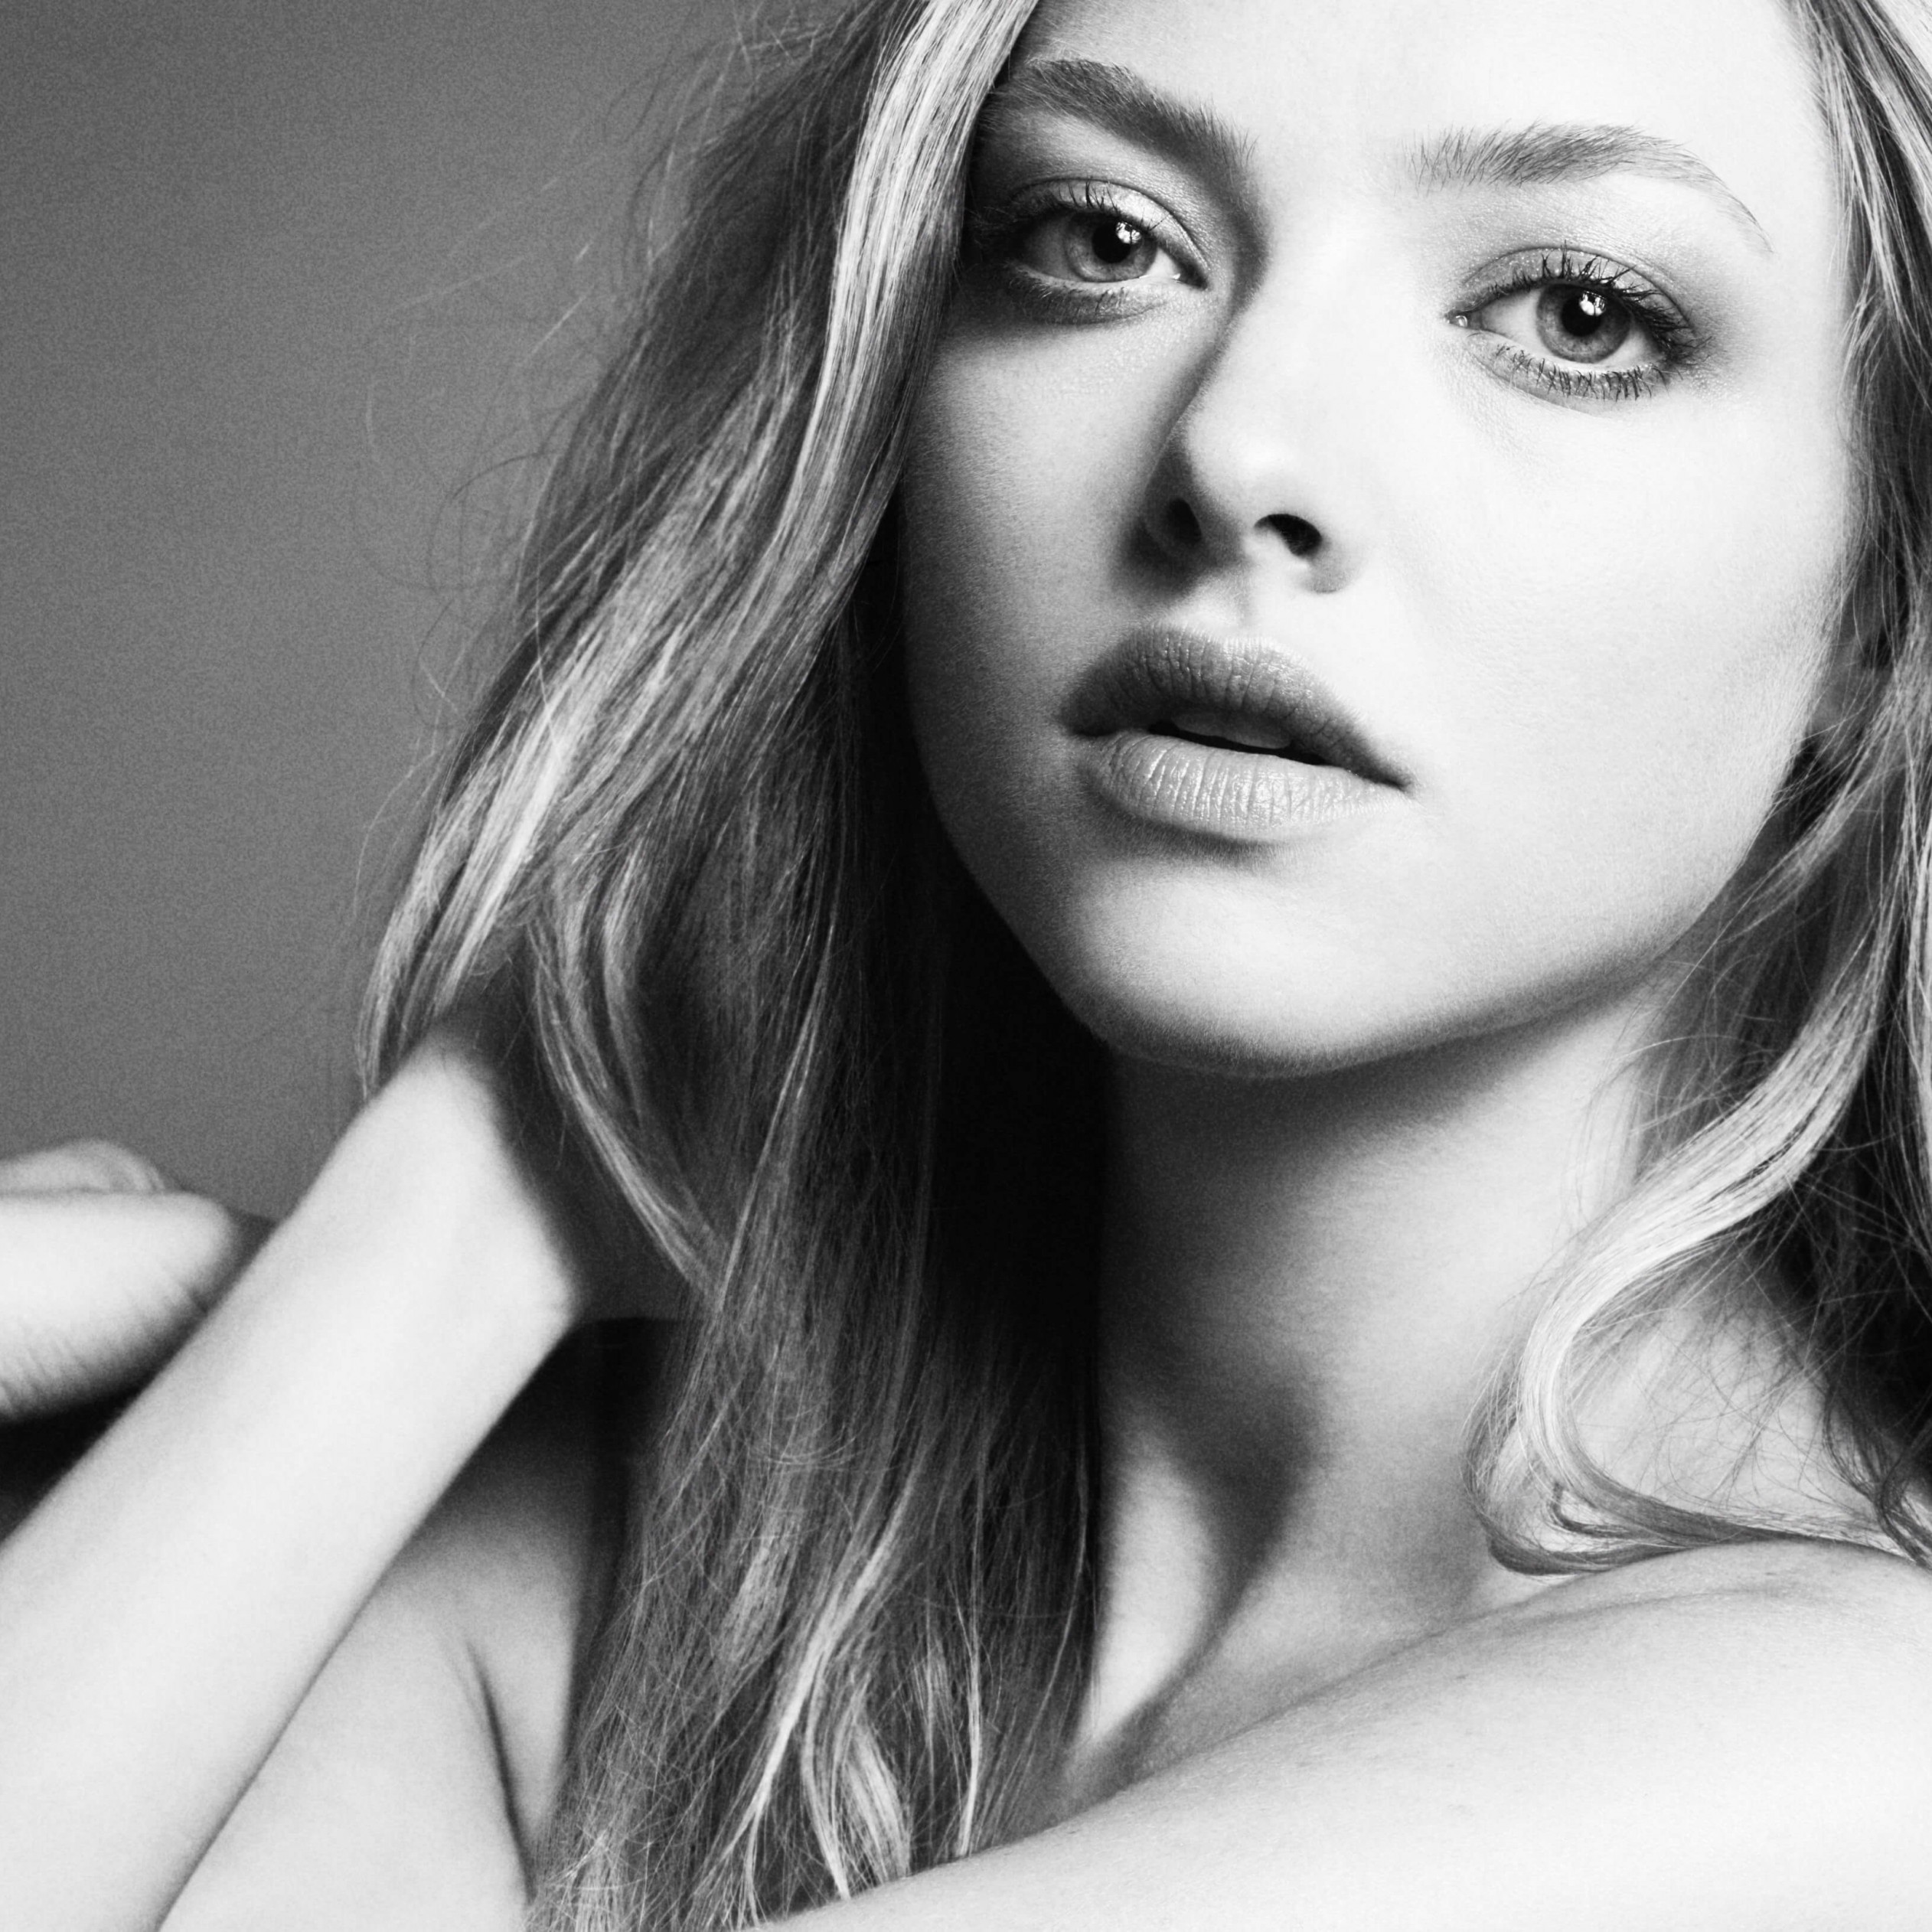 Amanda Seyfried Black & White Portrait Wallpaper for Apple iPad mini 2